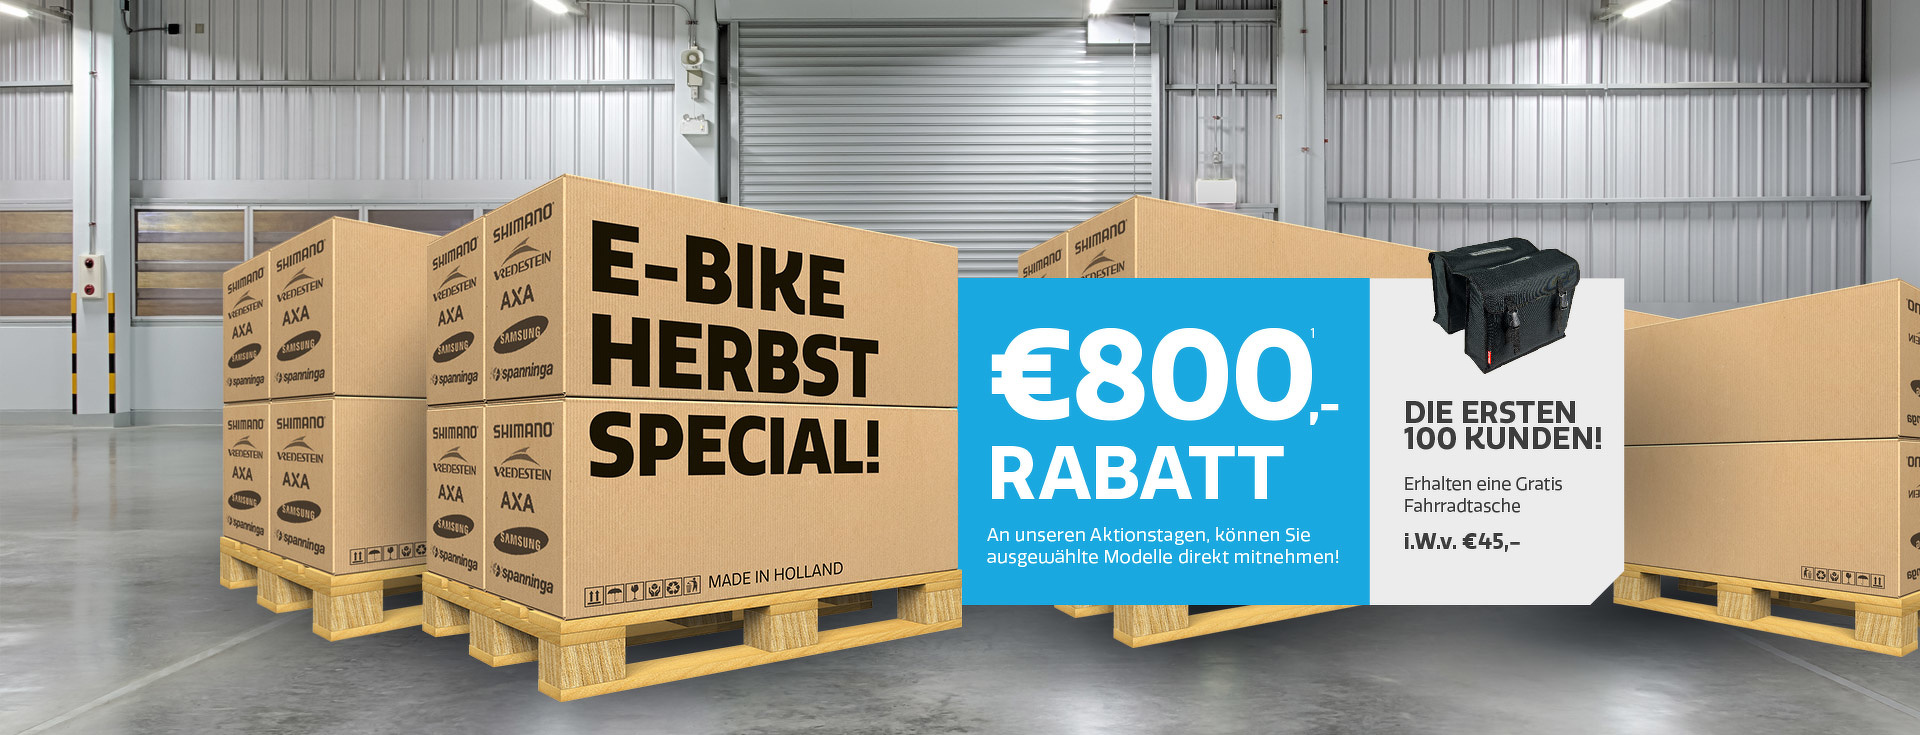 E-bike Herbst Special